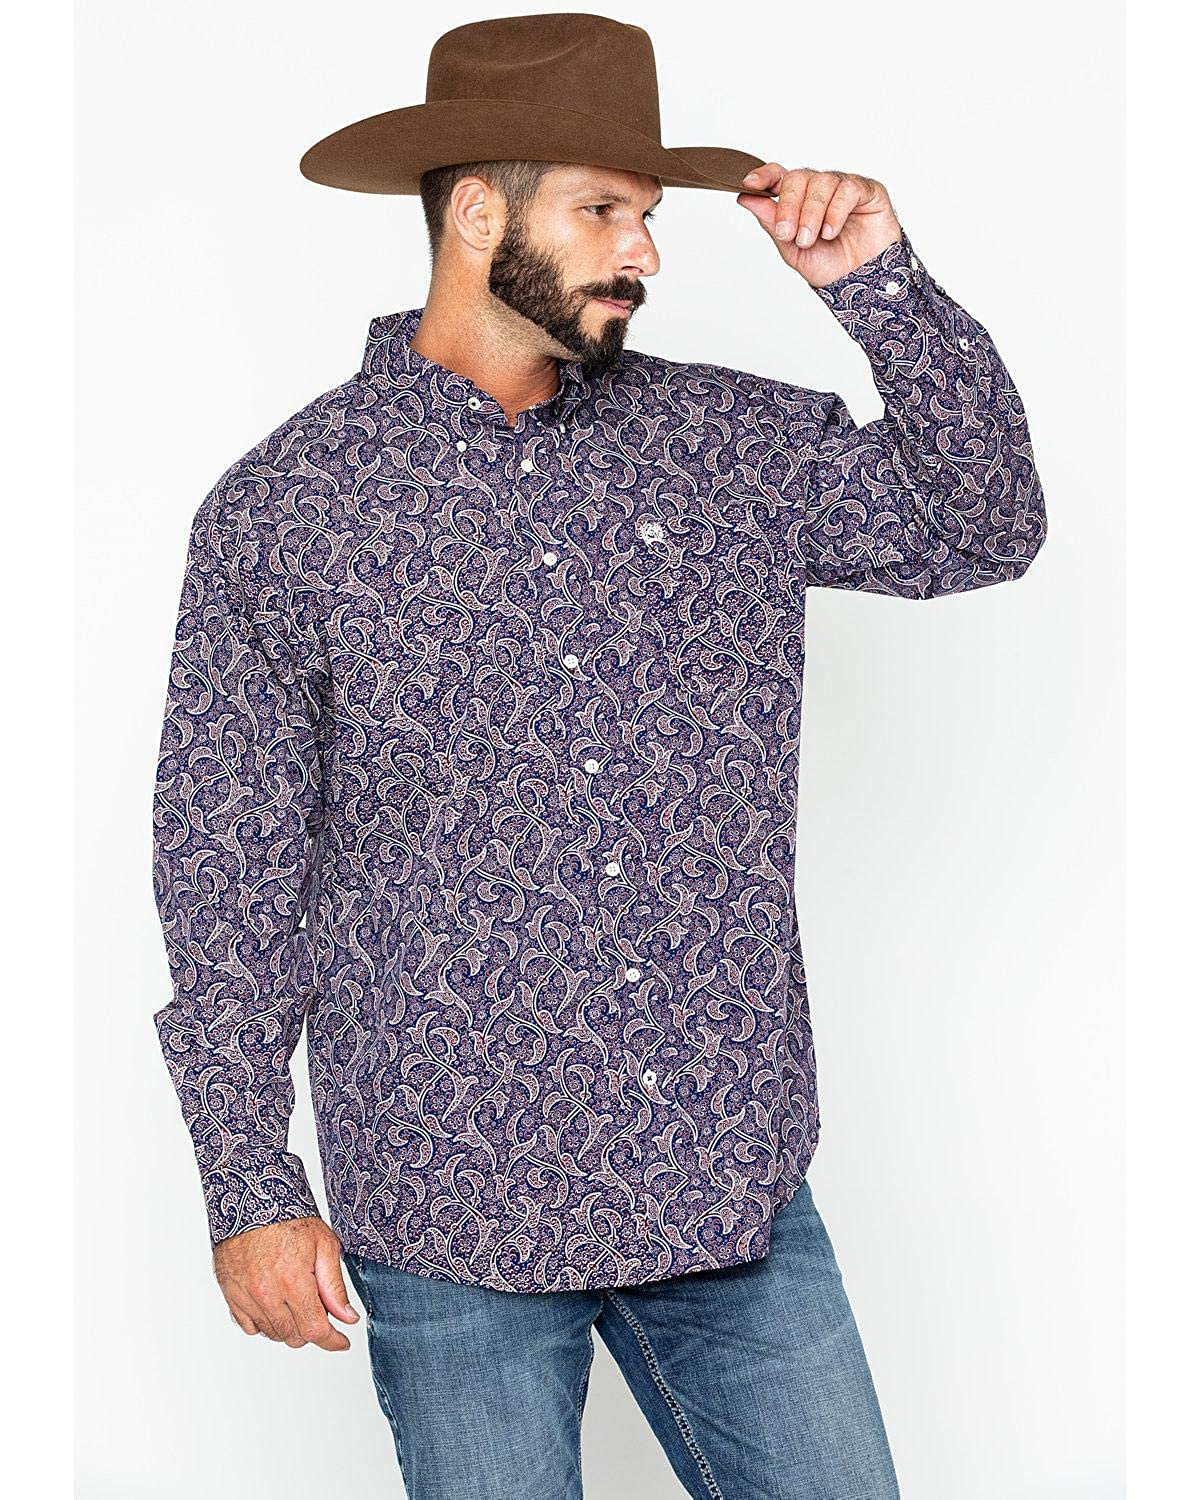 ea397352 Cinch Men's Navy Paisley Long Sleeve Button Down Western Shirt:  Amazon.ca: Clothing & Accessories